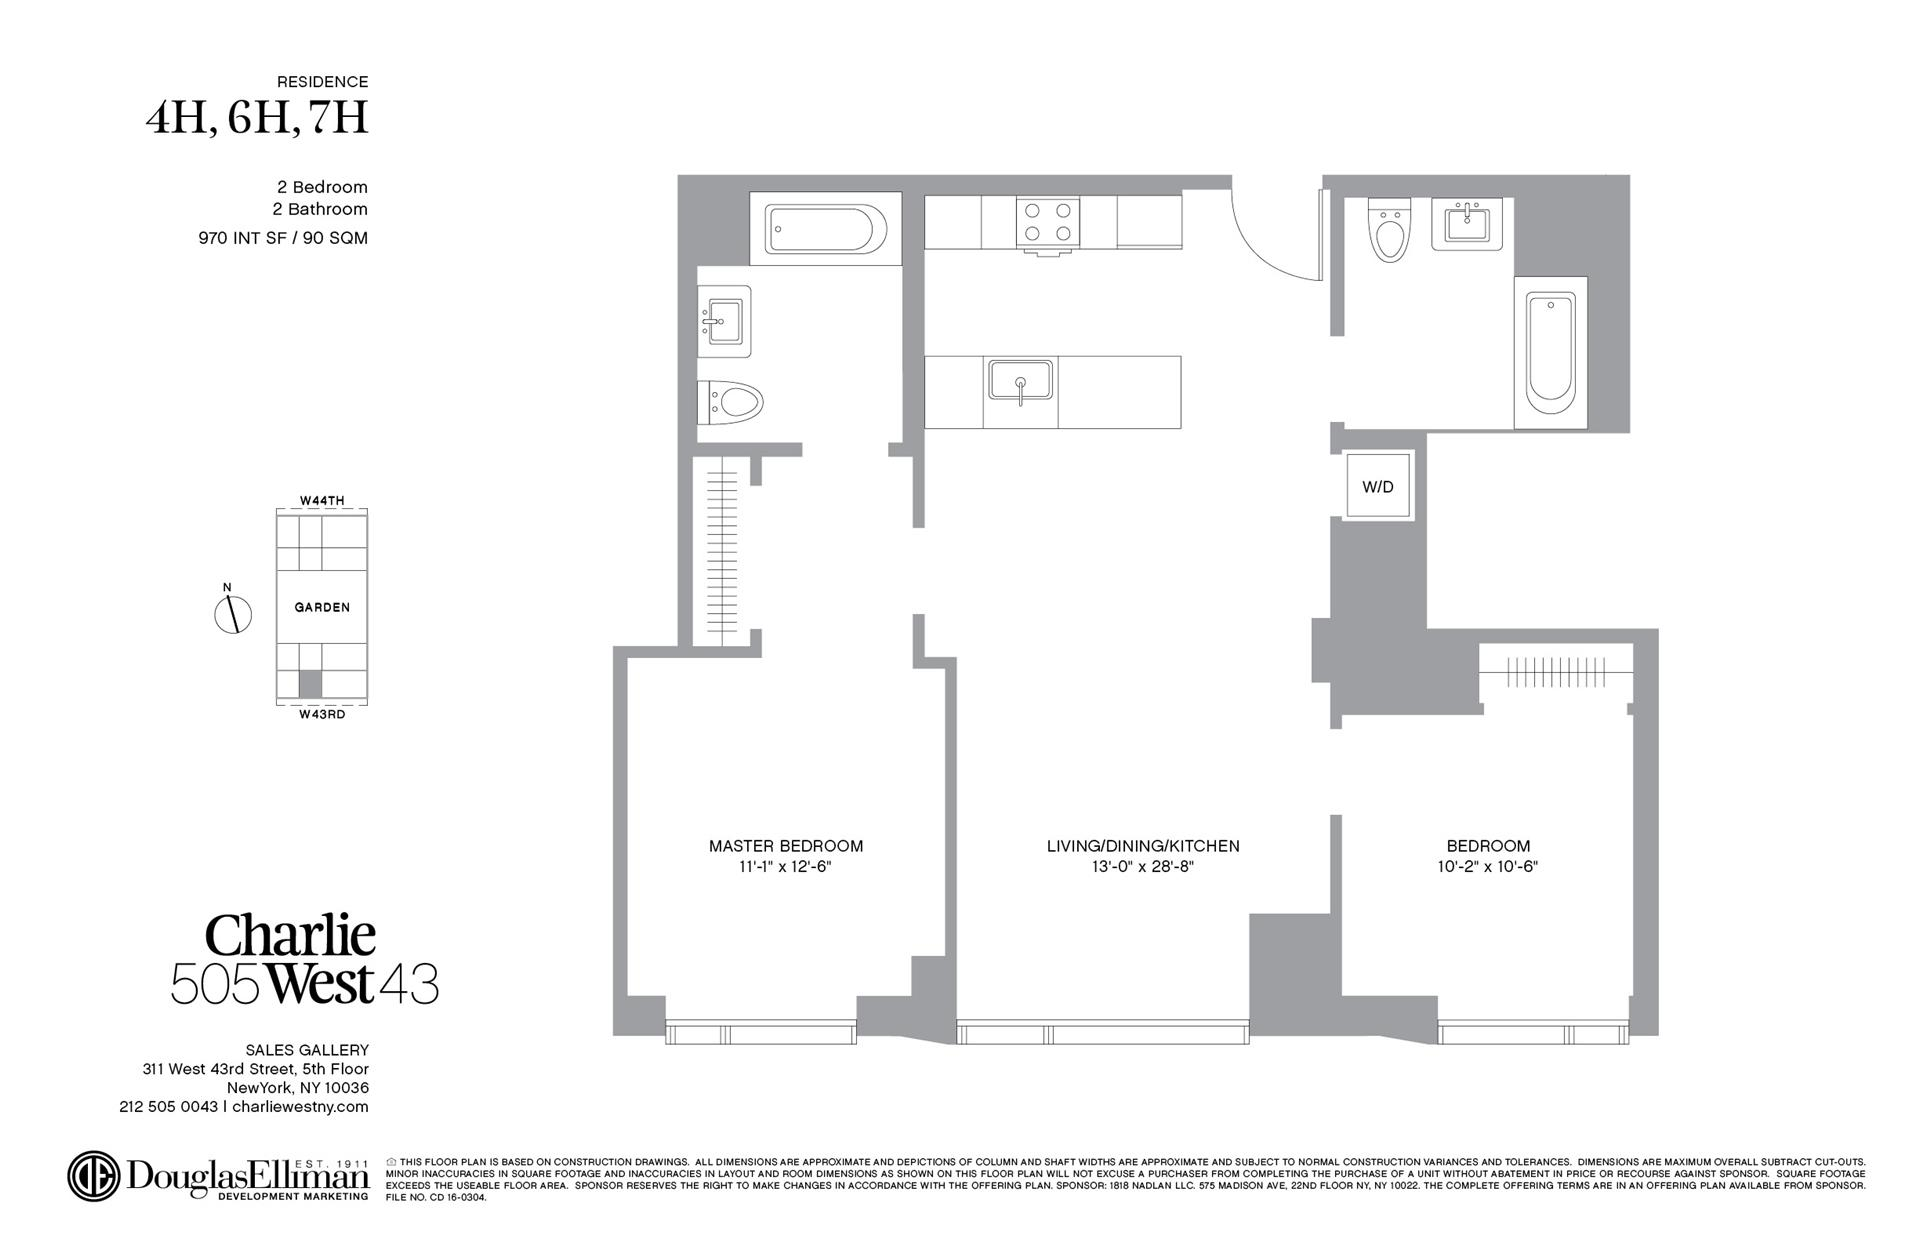 Floor plan of 505 West 43rd St, 7H - Clinton, New York